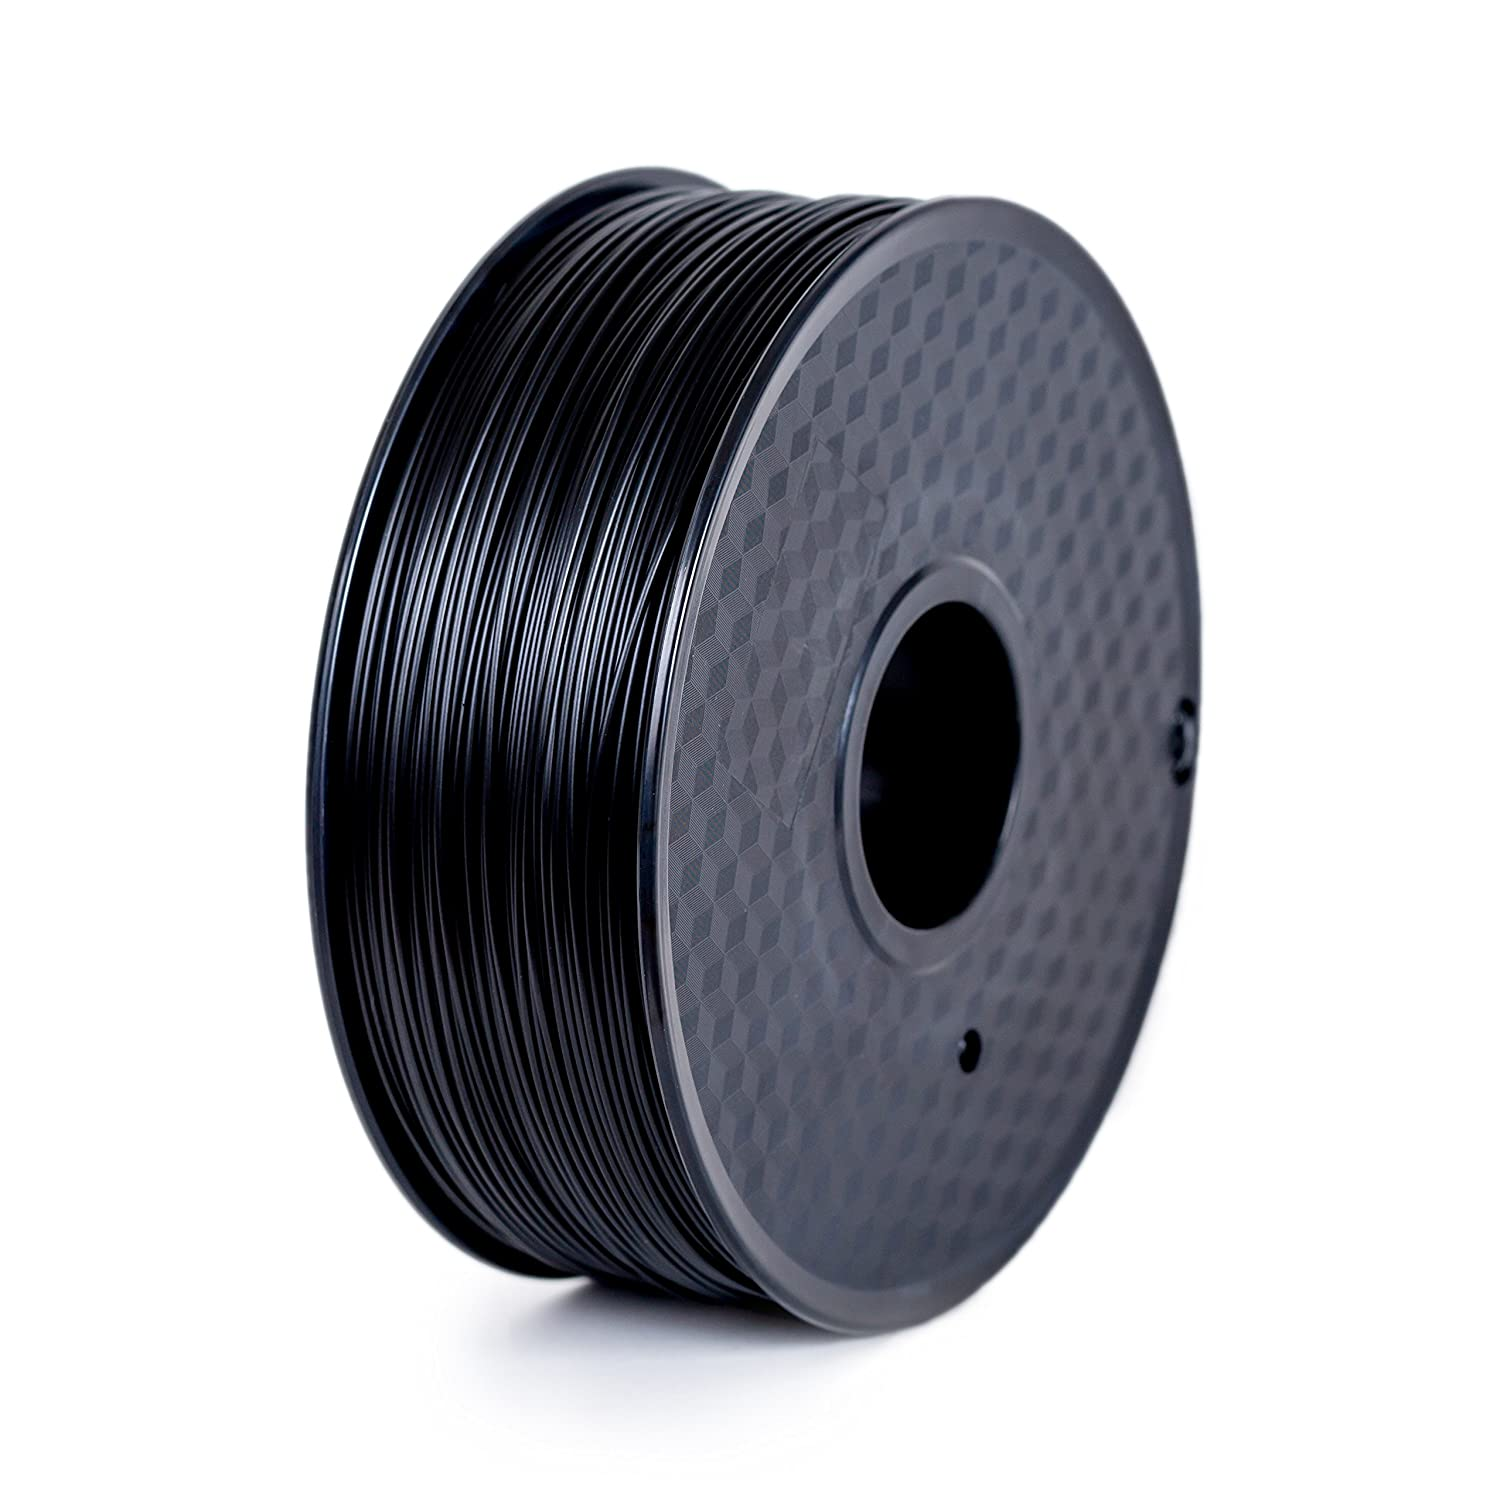 Lovely Paramount 3d Flexpla 1.75mm 1kg Filament graphite Gray